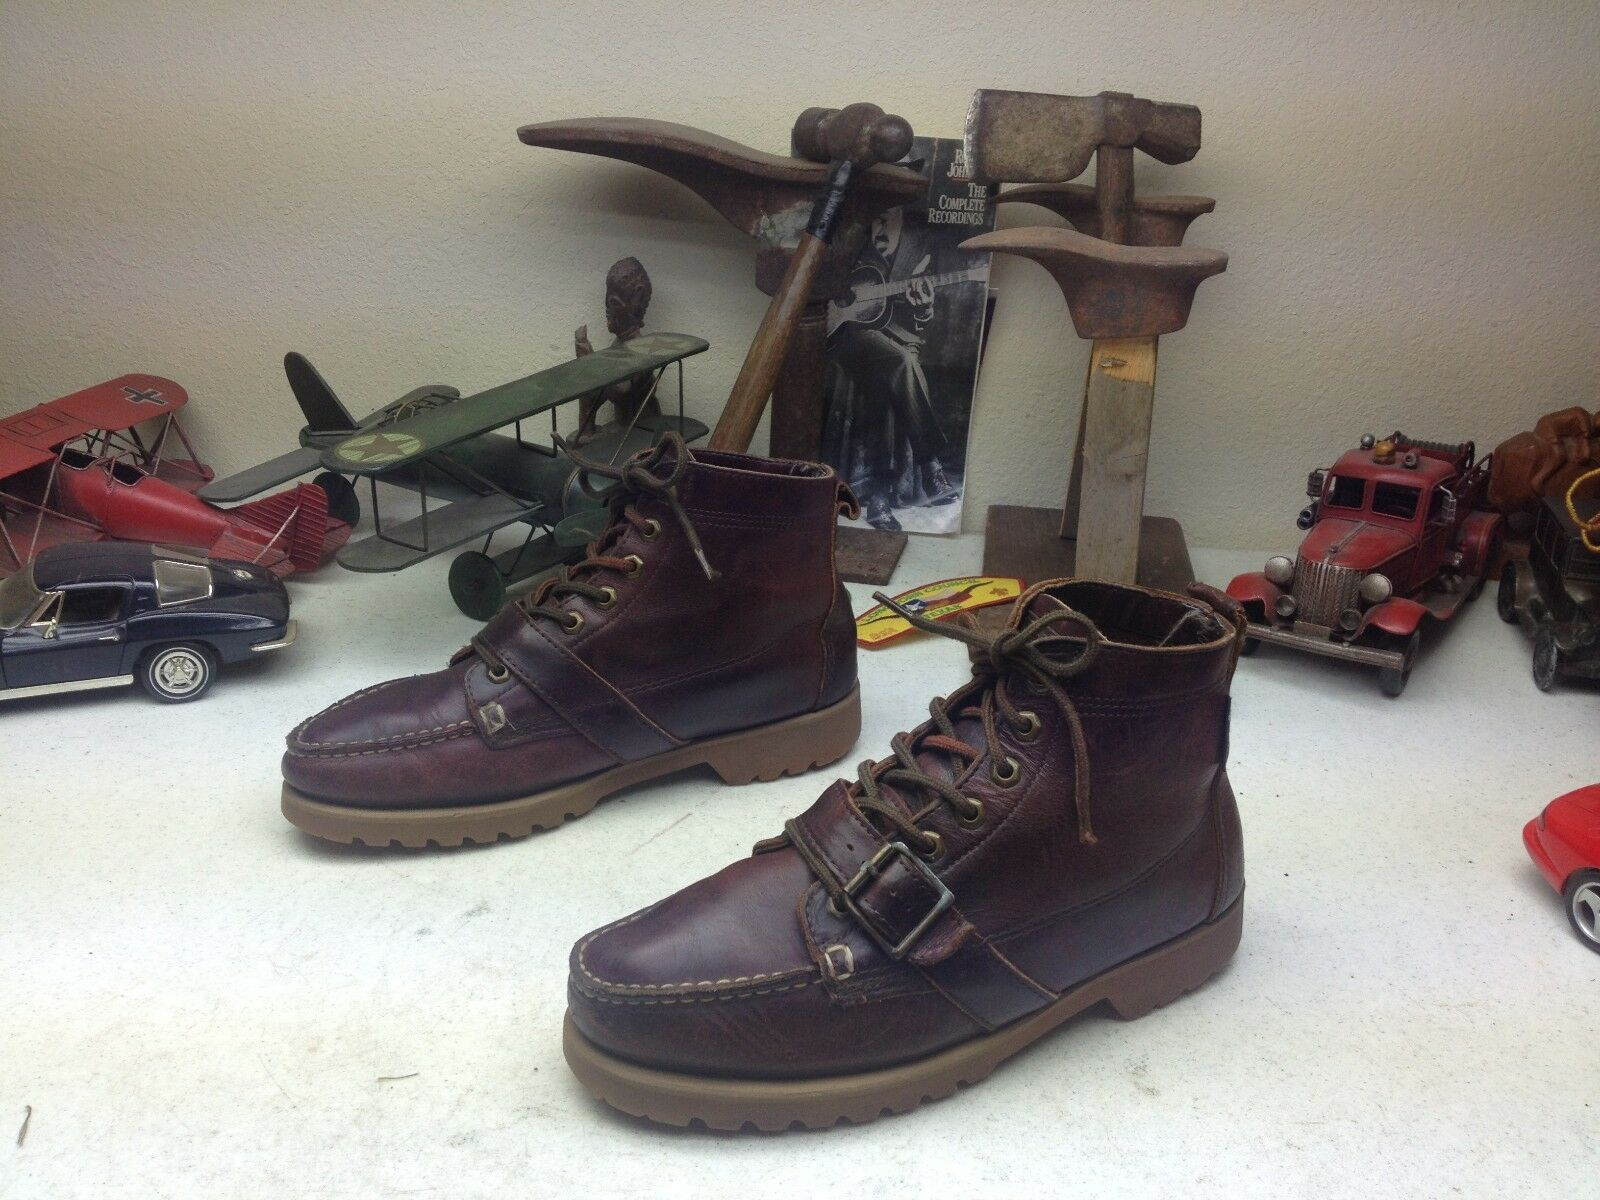 EASTLAND EASTLAND EASTLAND BUCKLE STRAP USA braun LEATHER LACE UP ENGINEER TRAIL BOSS Stiefel 10D 21aa8a